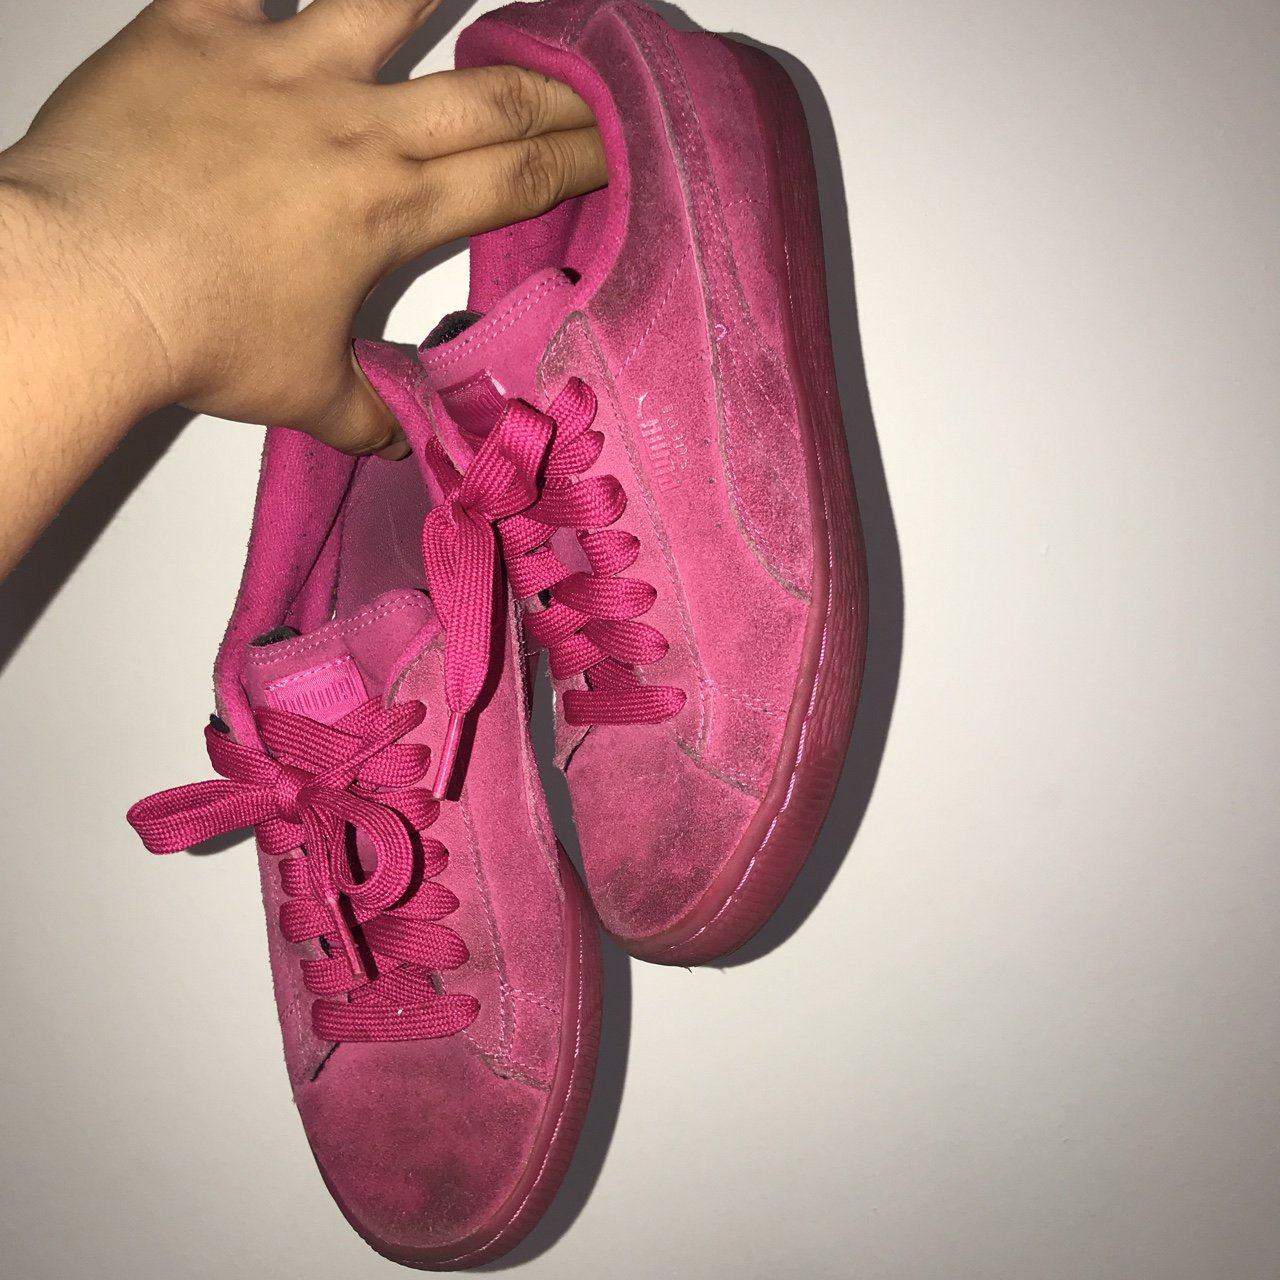 9d5e6df0a5bfdd Hot pink suede pumas They are dirty mostly because I don t - Depop